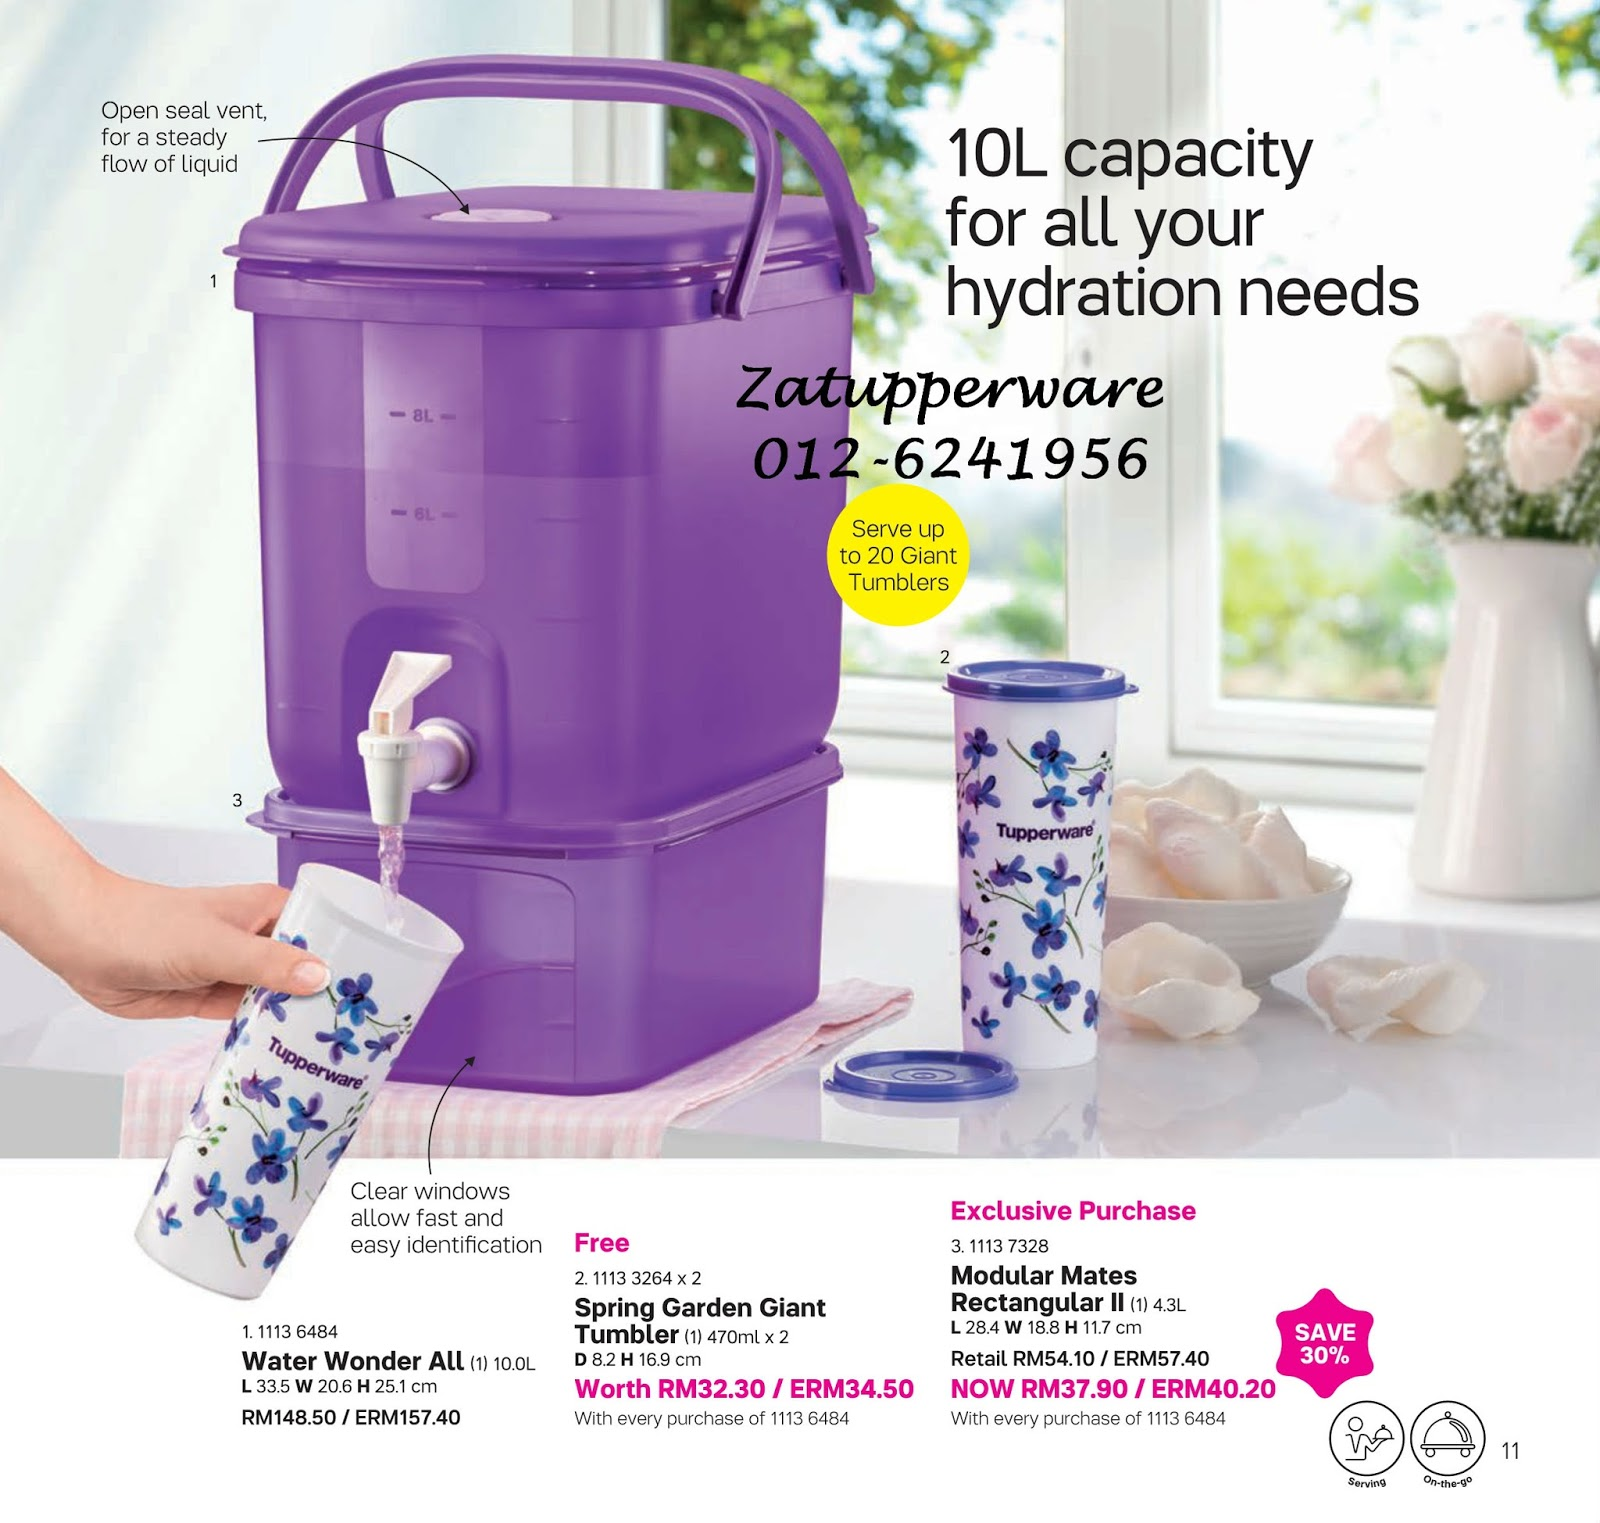 Buy Here Pay Here Ma >> Za Tupperware Brands Malaysia : Latest Catalogue 2018